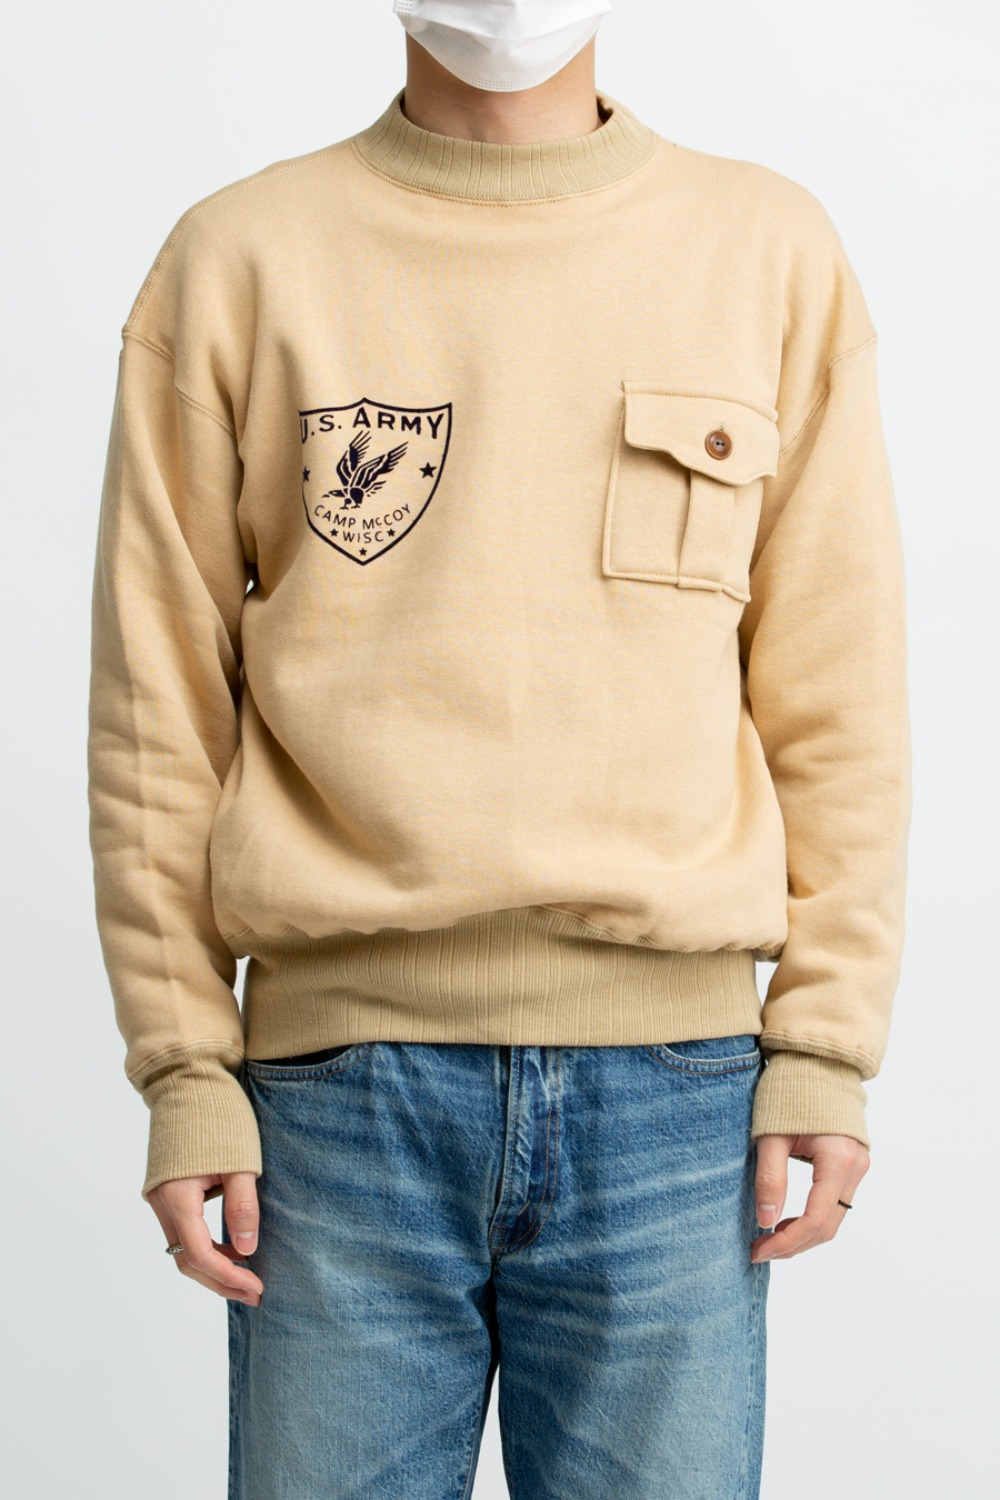 LOT 478 MILITARY SWEATSHIRT CAMP MCCOY BEIGE